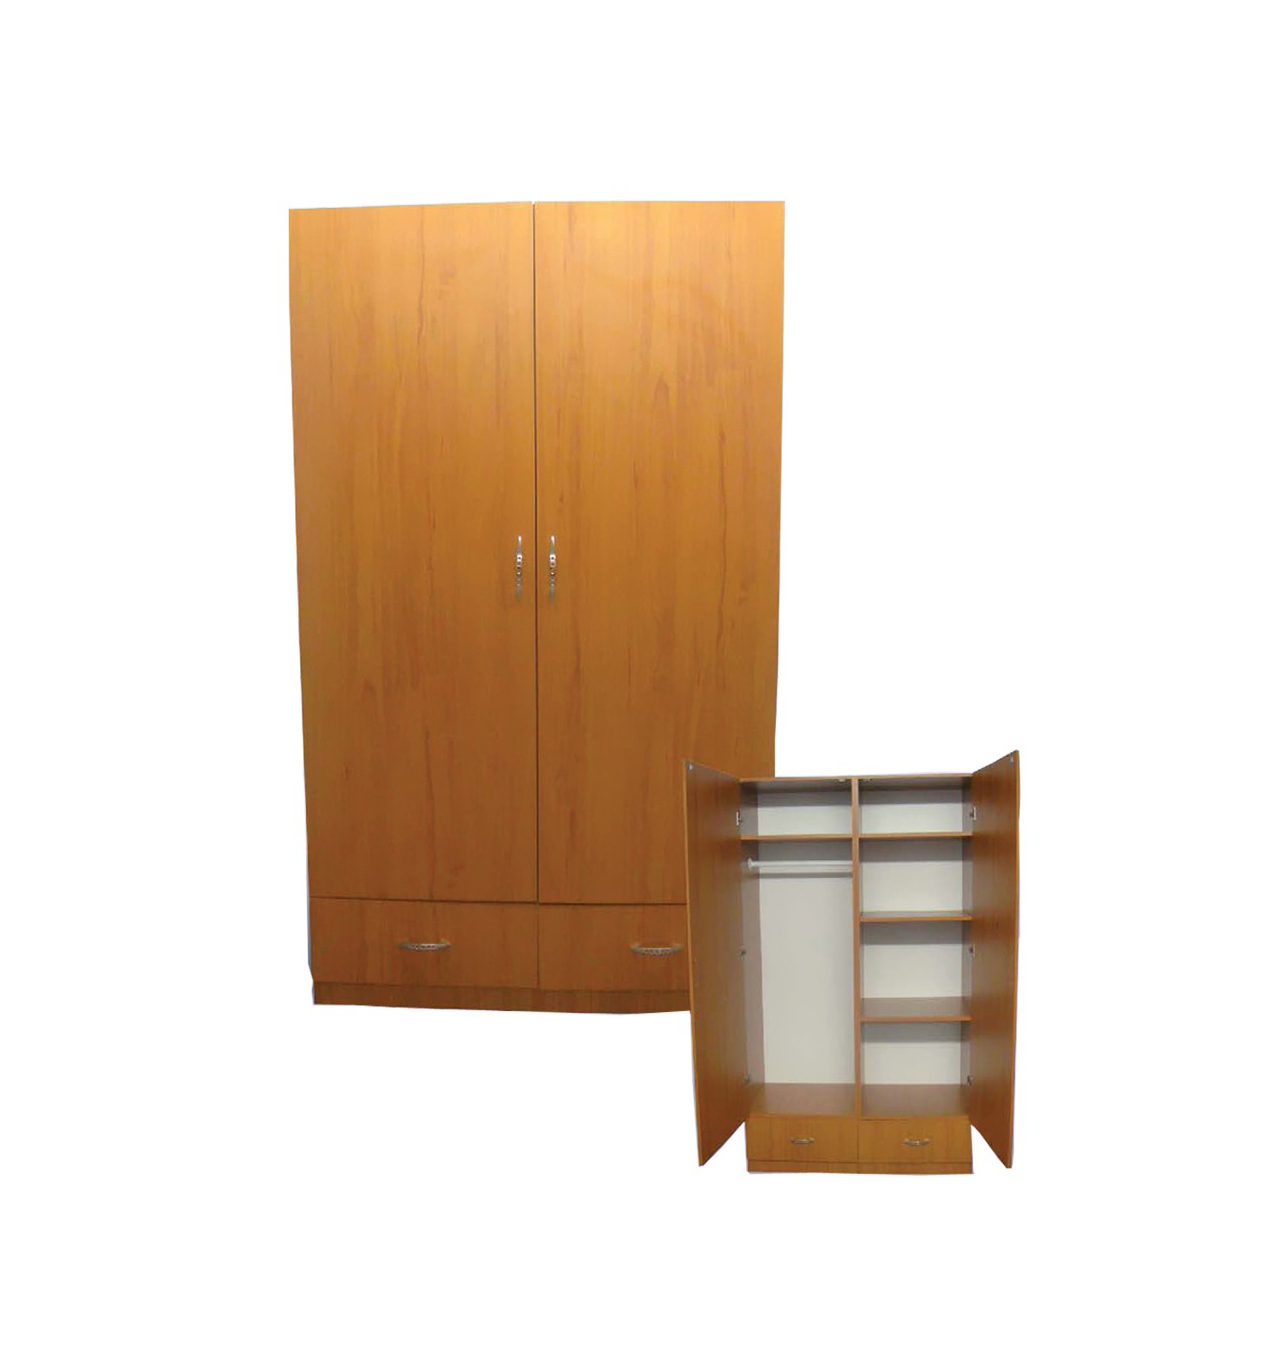 Wardrobe Furniture L 24 Brown Wooden Wardrobe By Central Furniture Factory